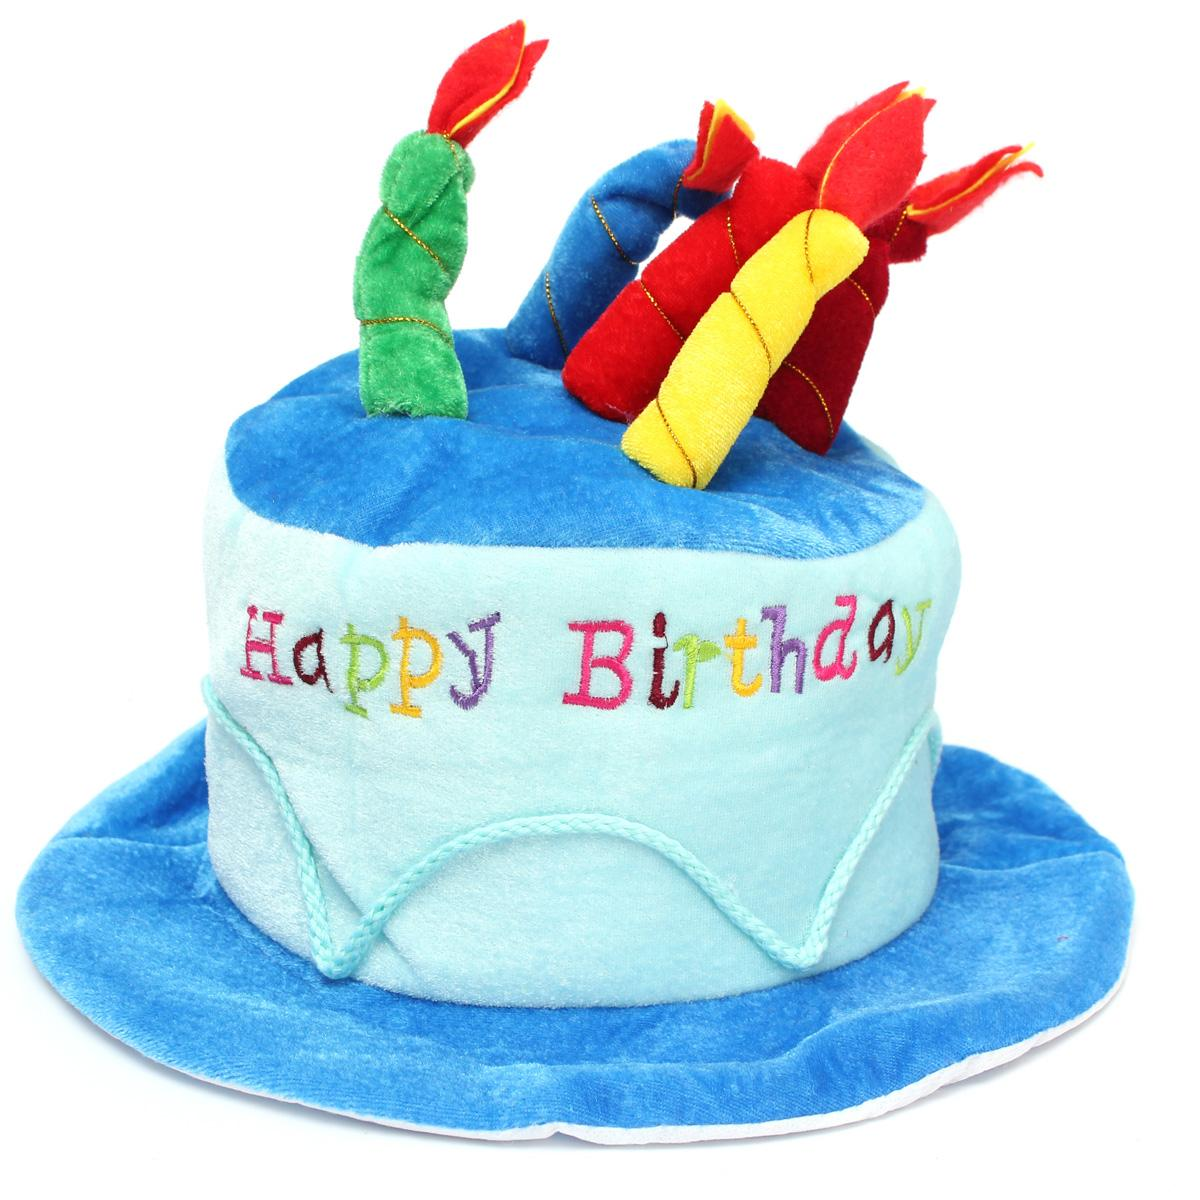 Product Details Of Happy Birthday Plush Cake Hats Novelty Cap Candles Party Supplies Lovely Costume Blue